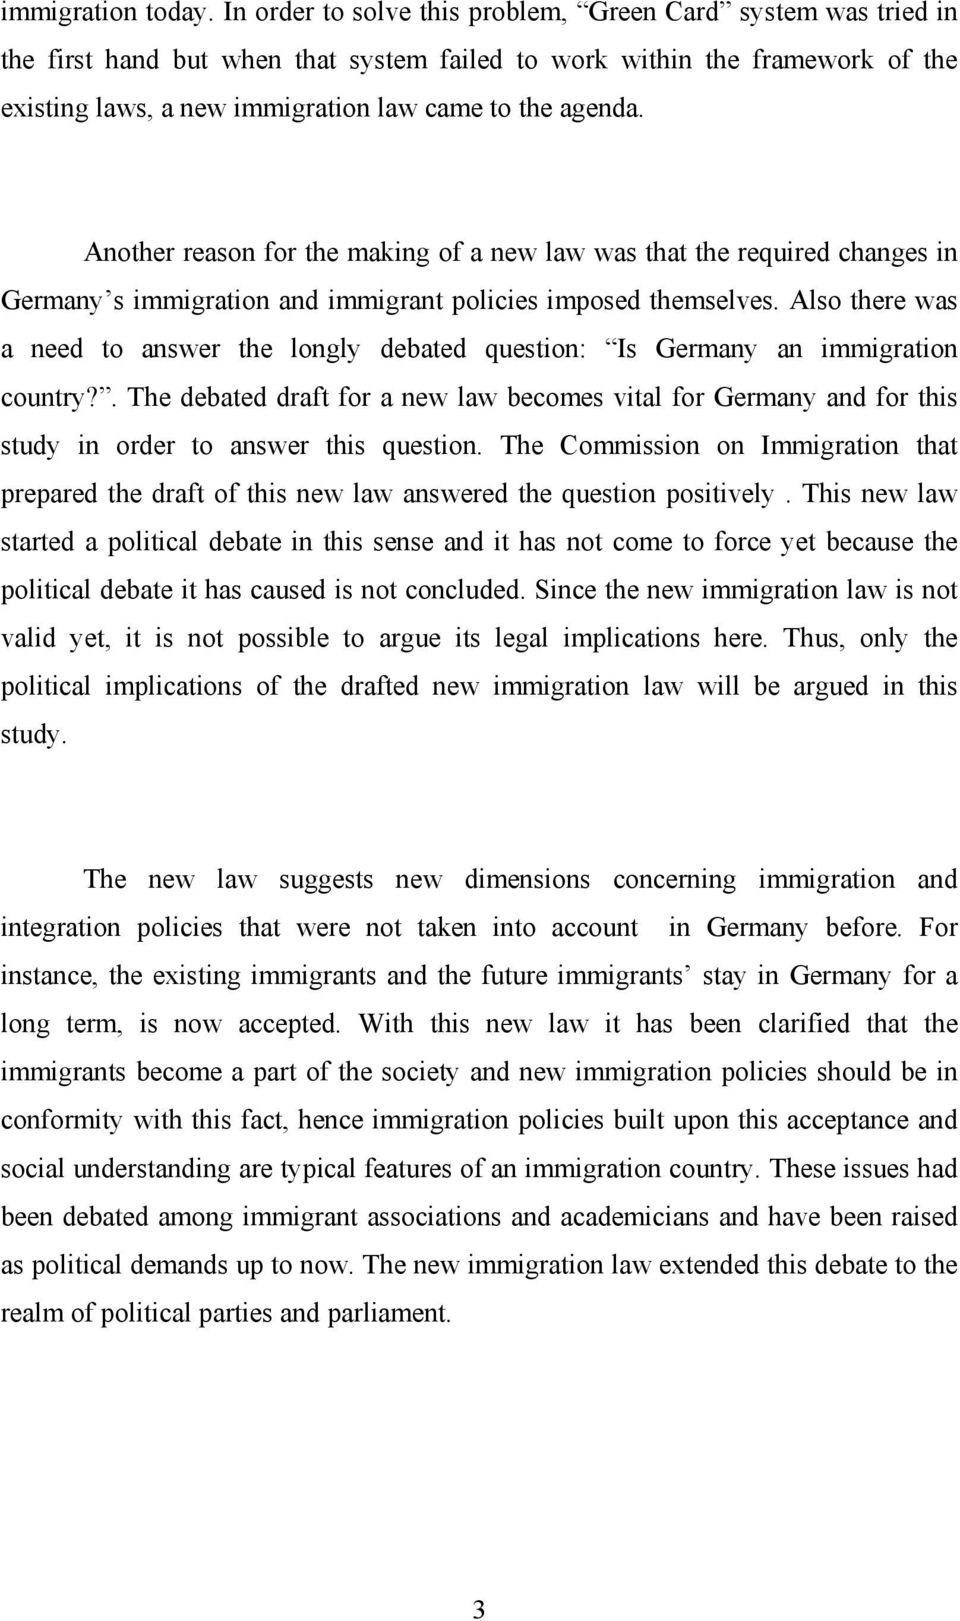 Another reason for the making of a new law was that the required changes in Germany s immigration and immigrant policies imposed themselves.